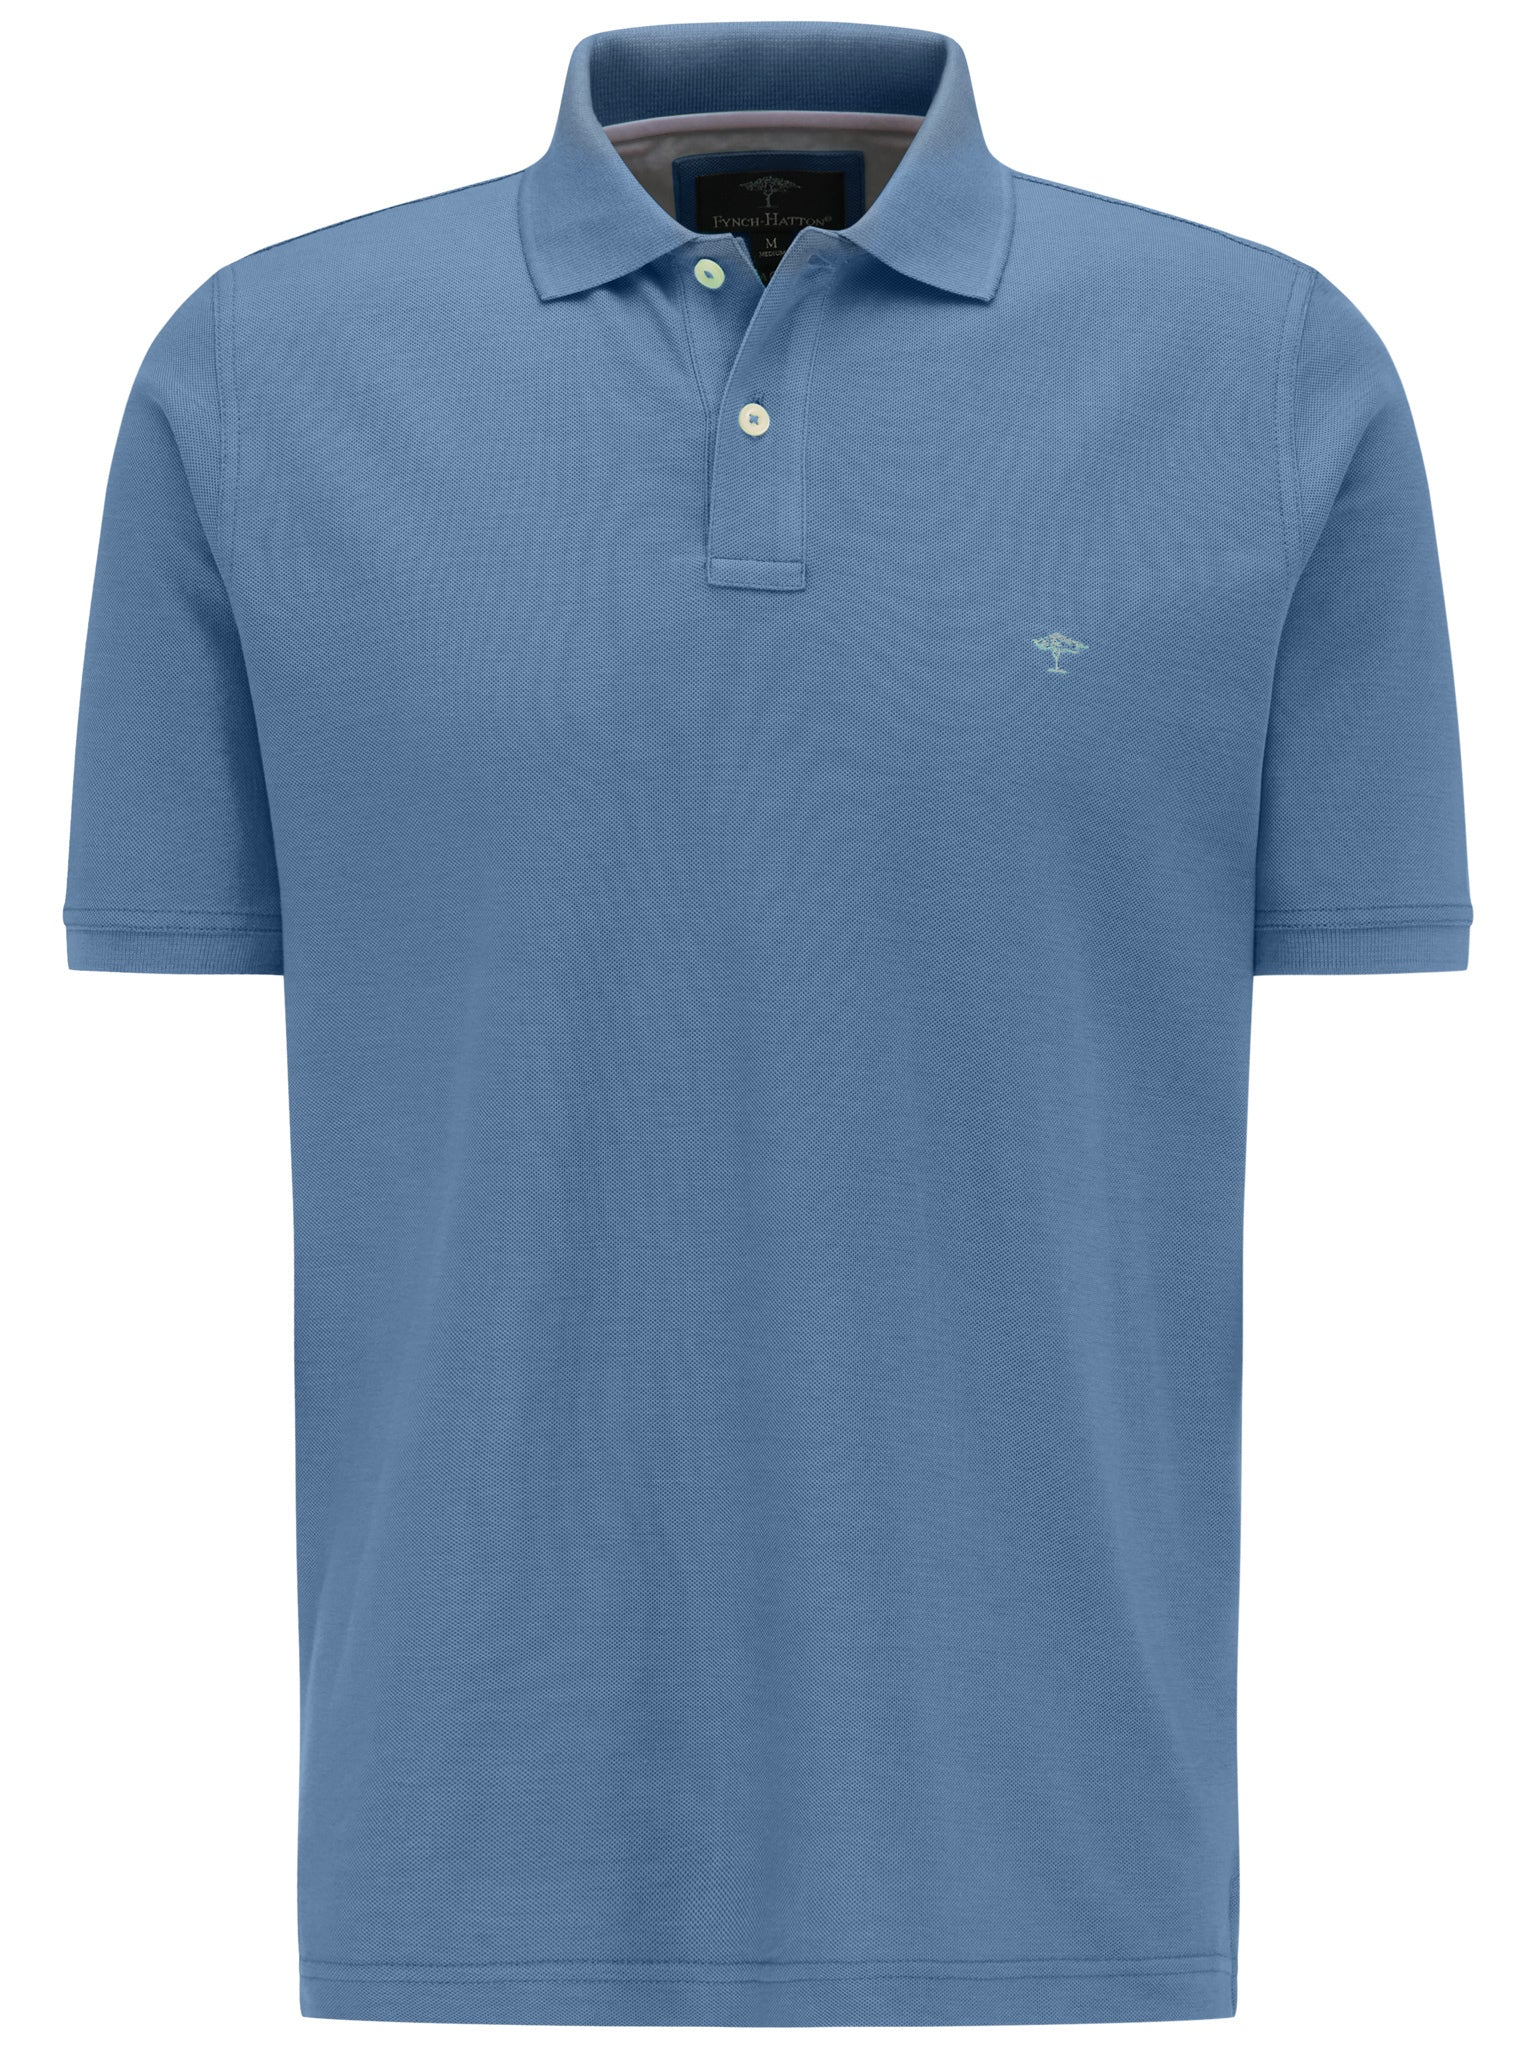 Fynch Hatton Basic Polo Top for Men in Pacific